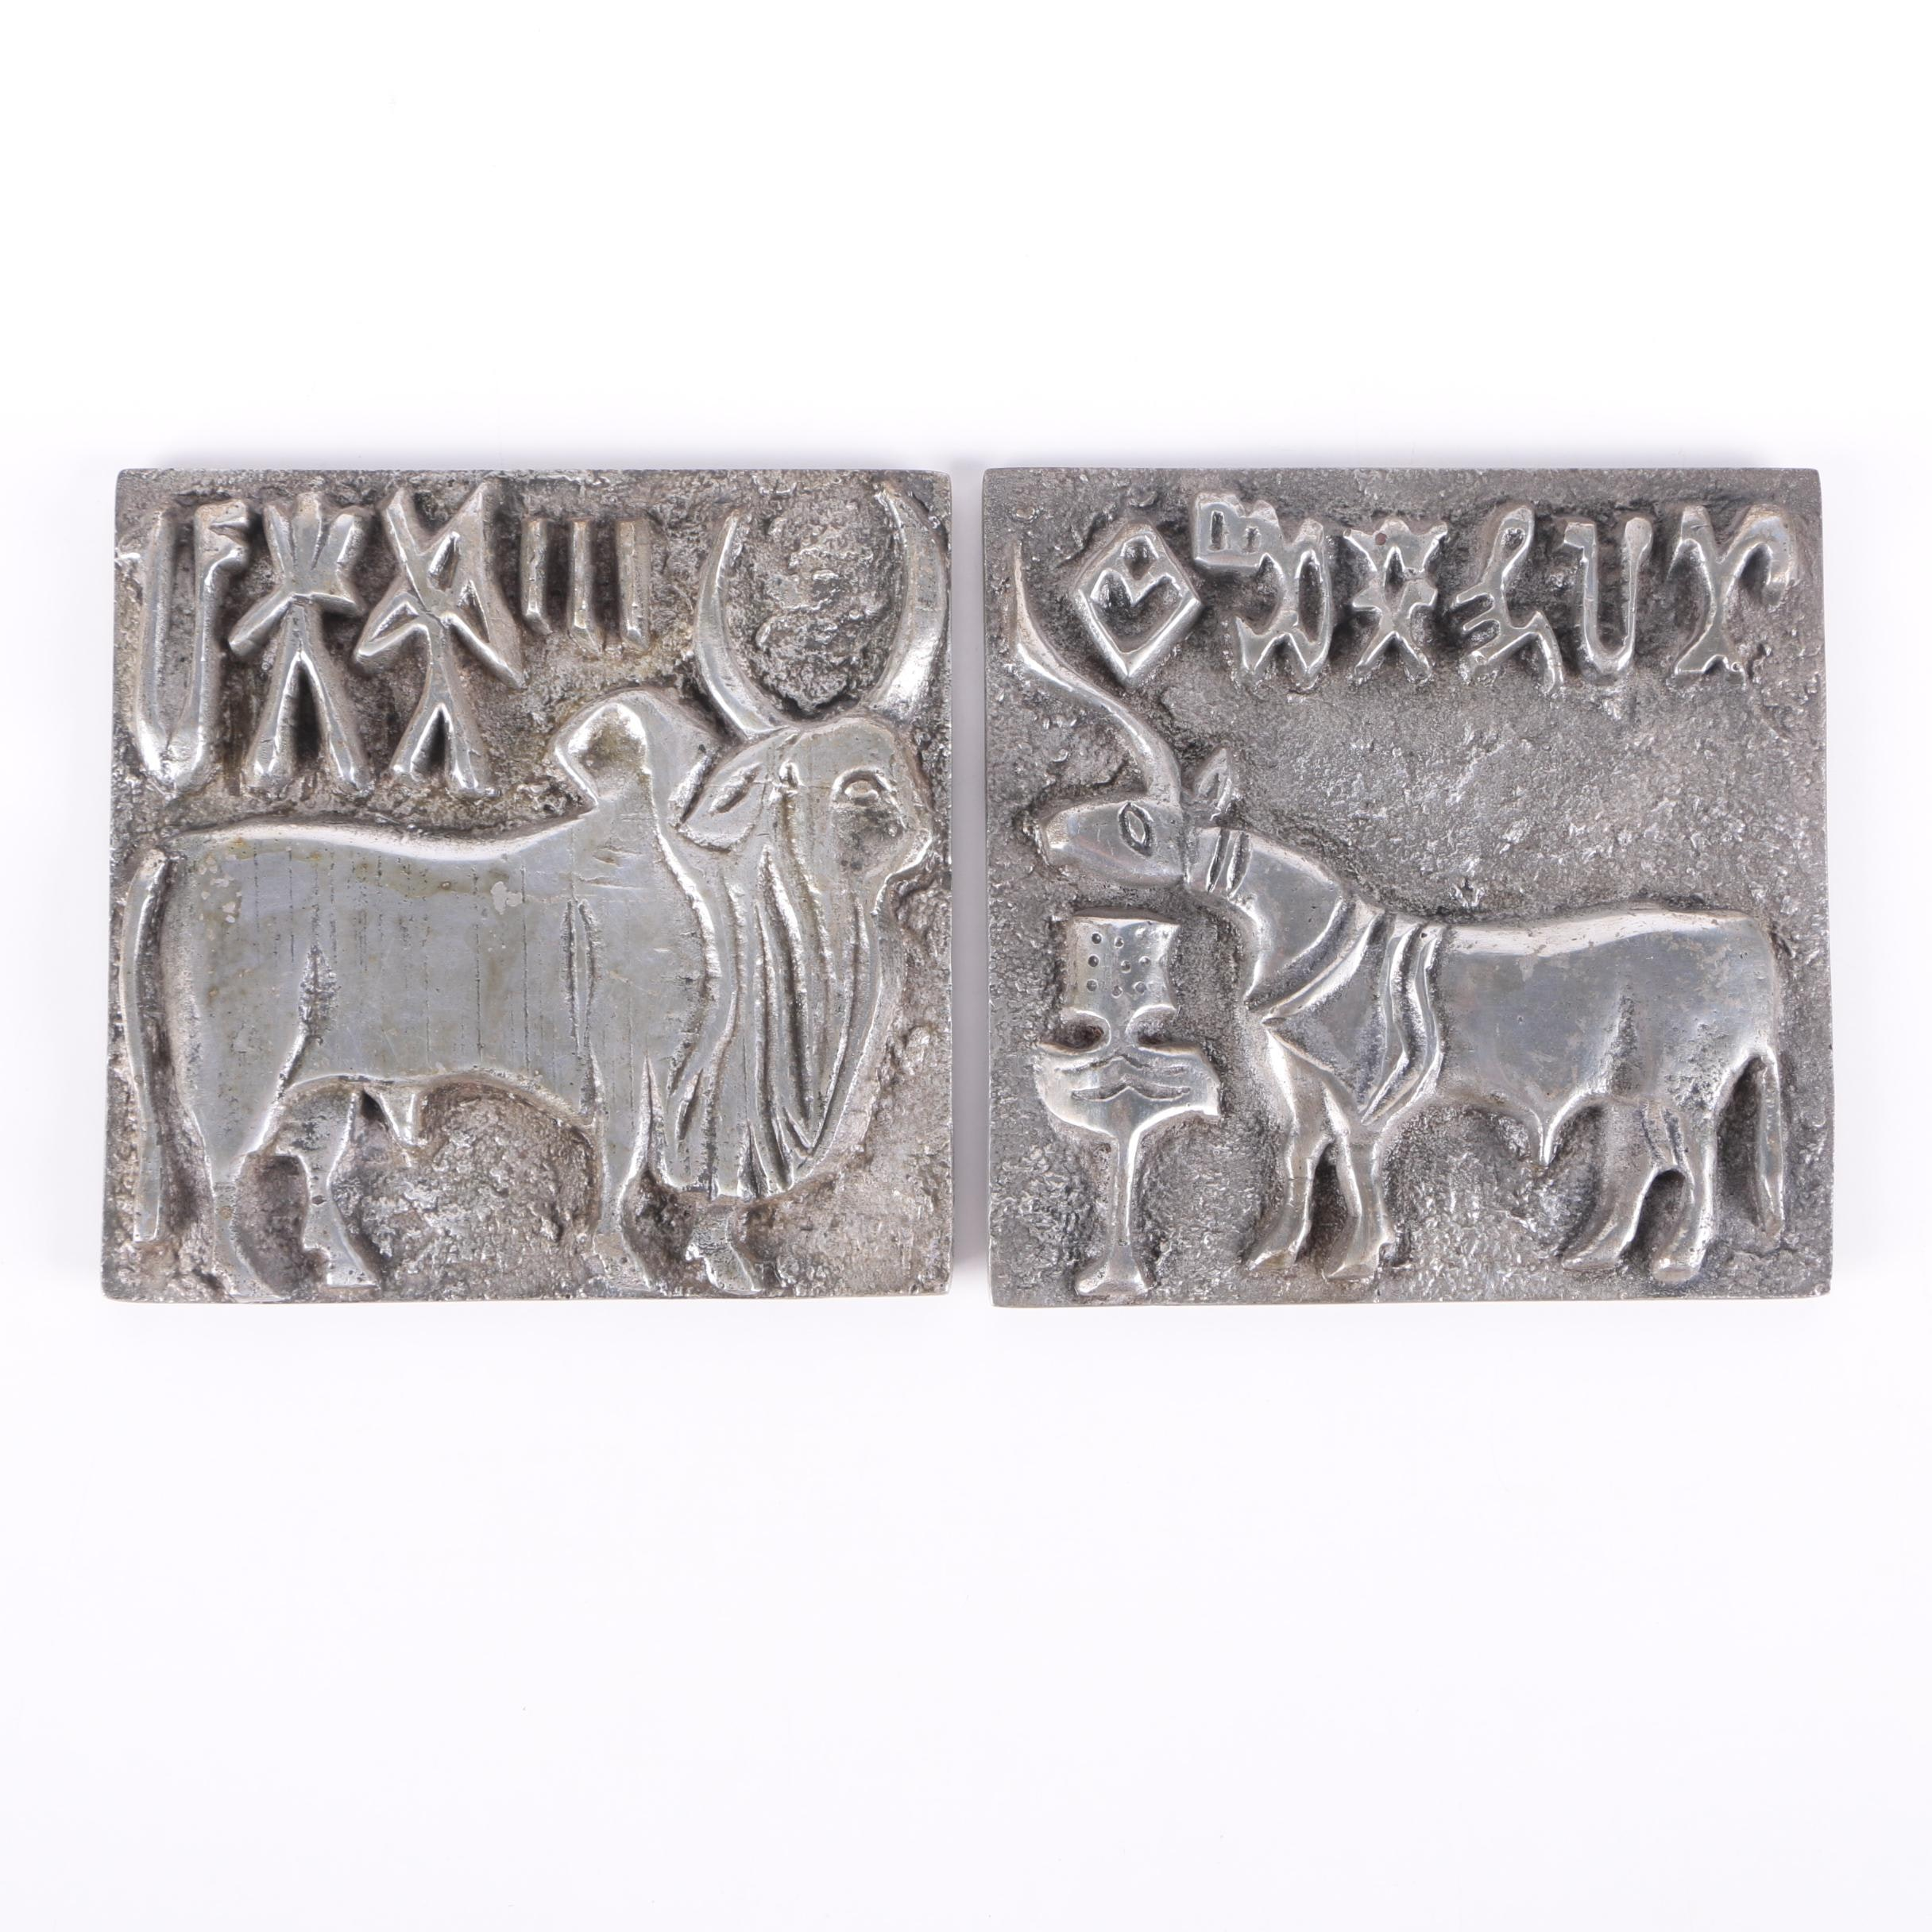 Metal Alloy Wall Hangings of an Ox and a Deer in Relief